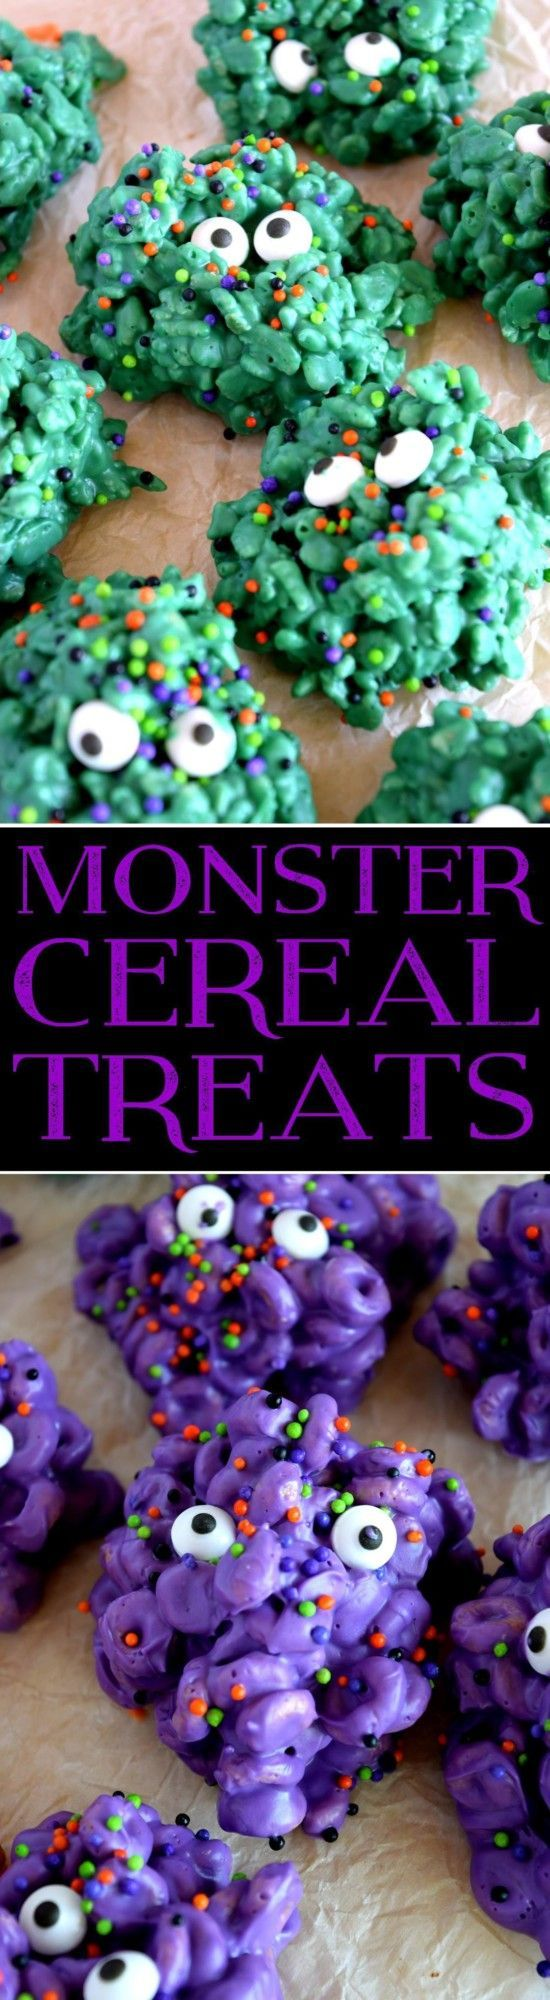 monster-cereal-treats                                                                                                                                                                                 More